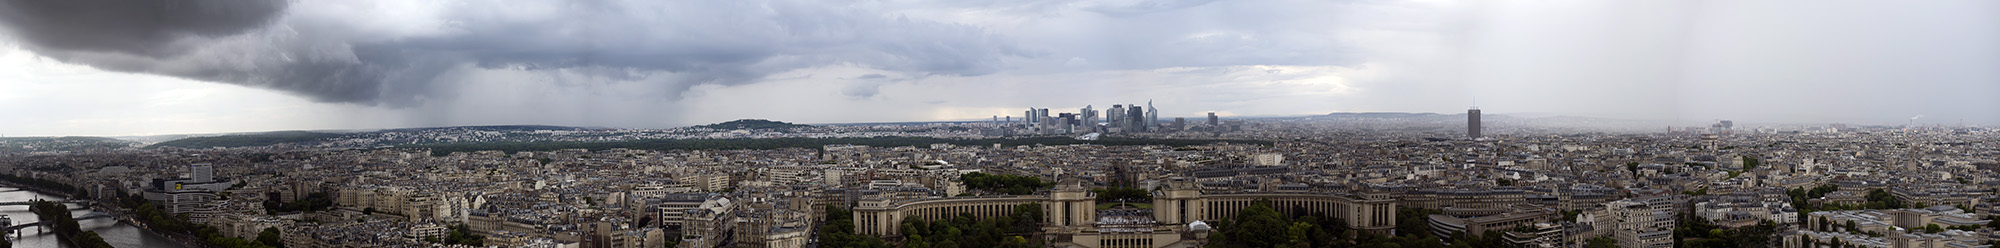 paris_pano4